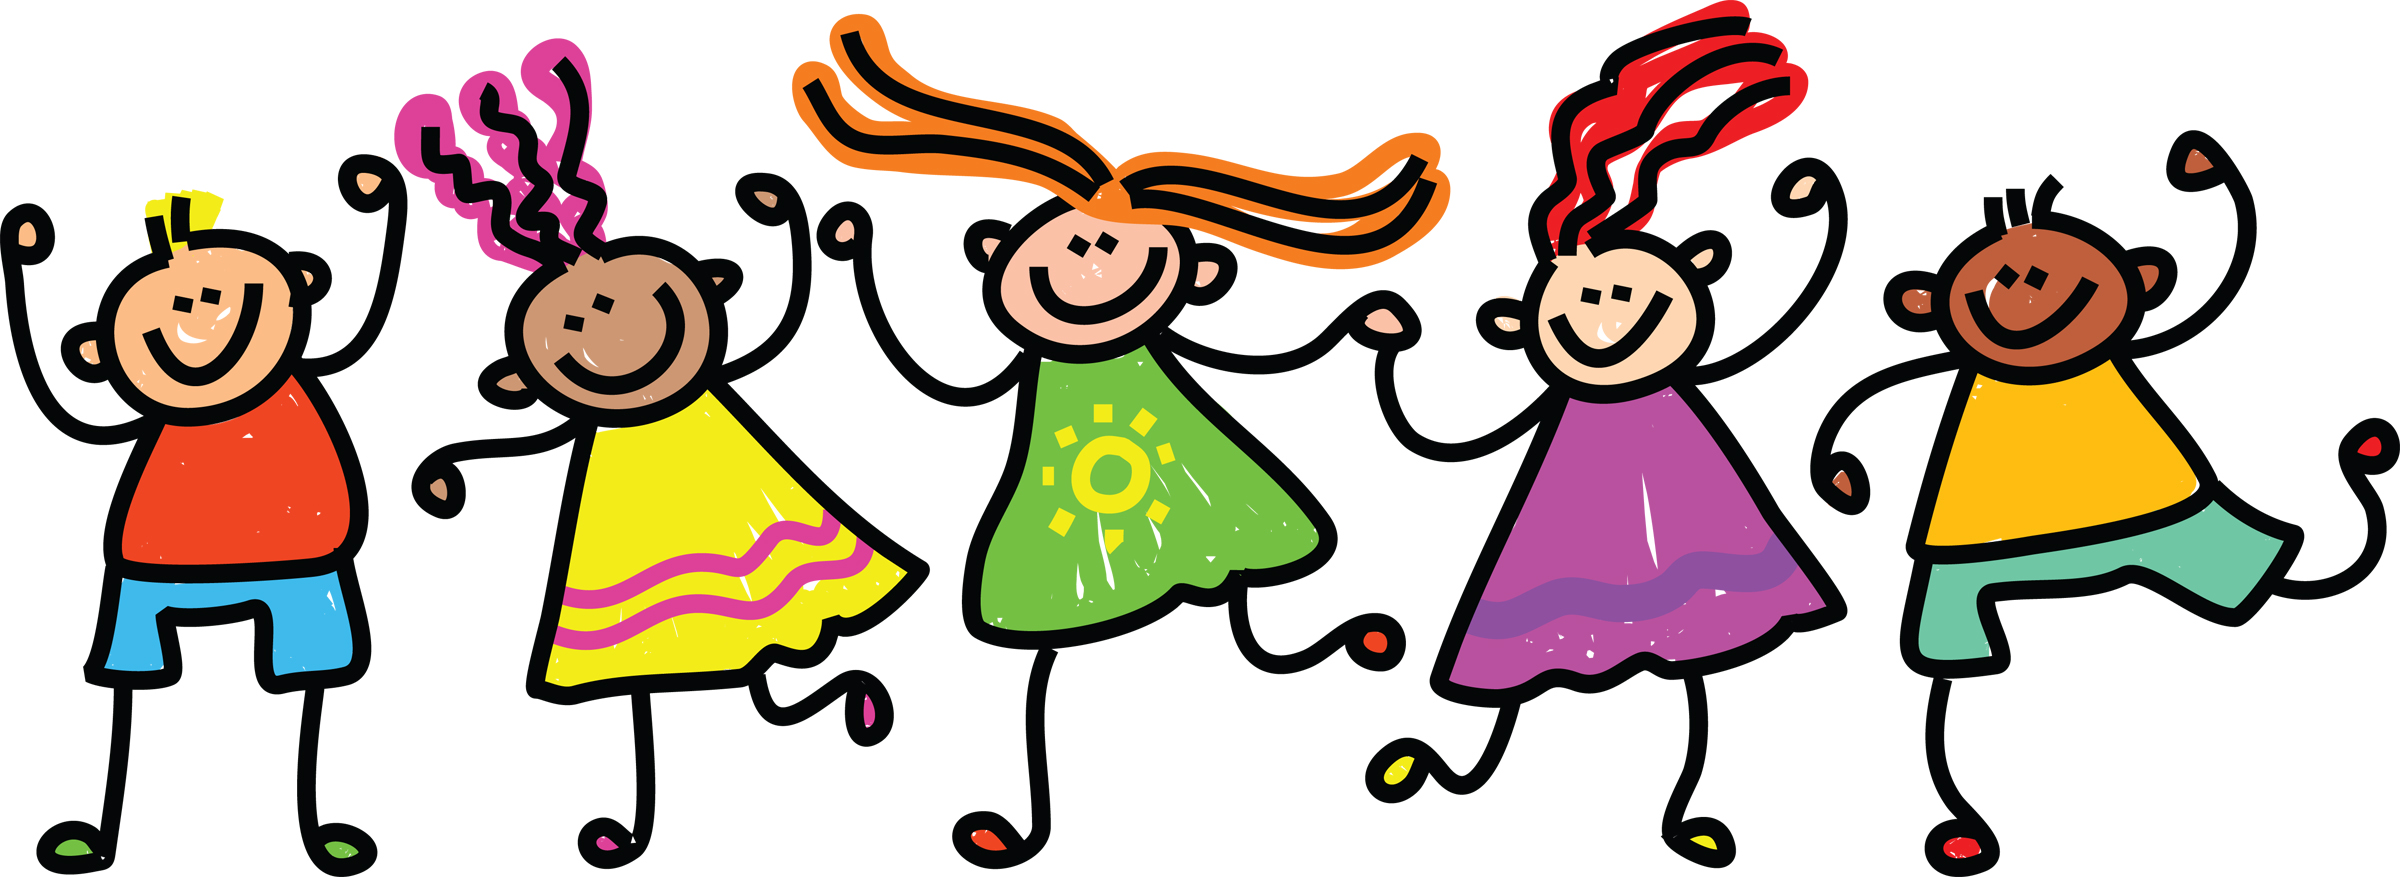 Creative clipart childrens hands Student free high com Happy